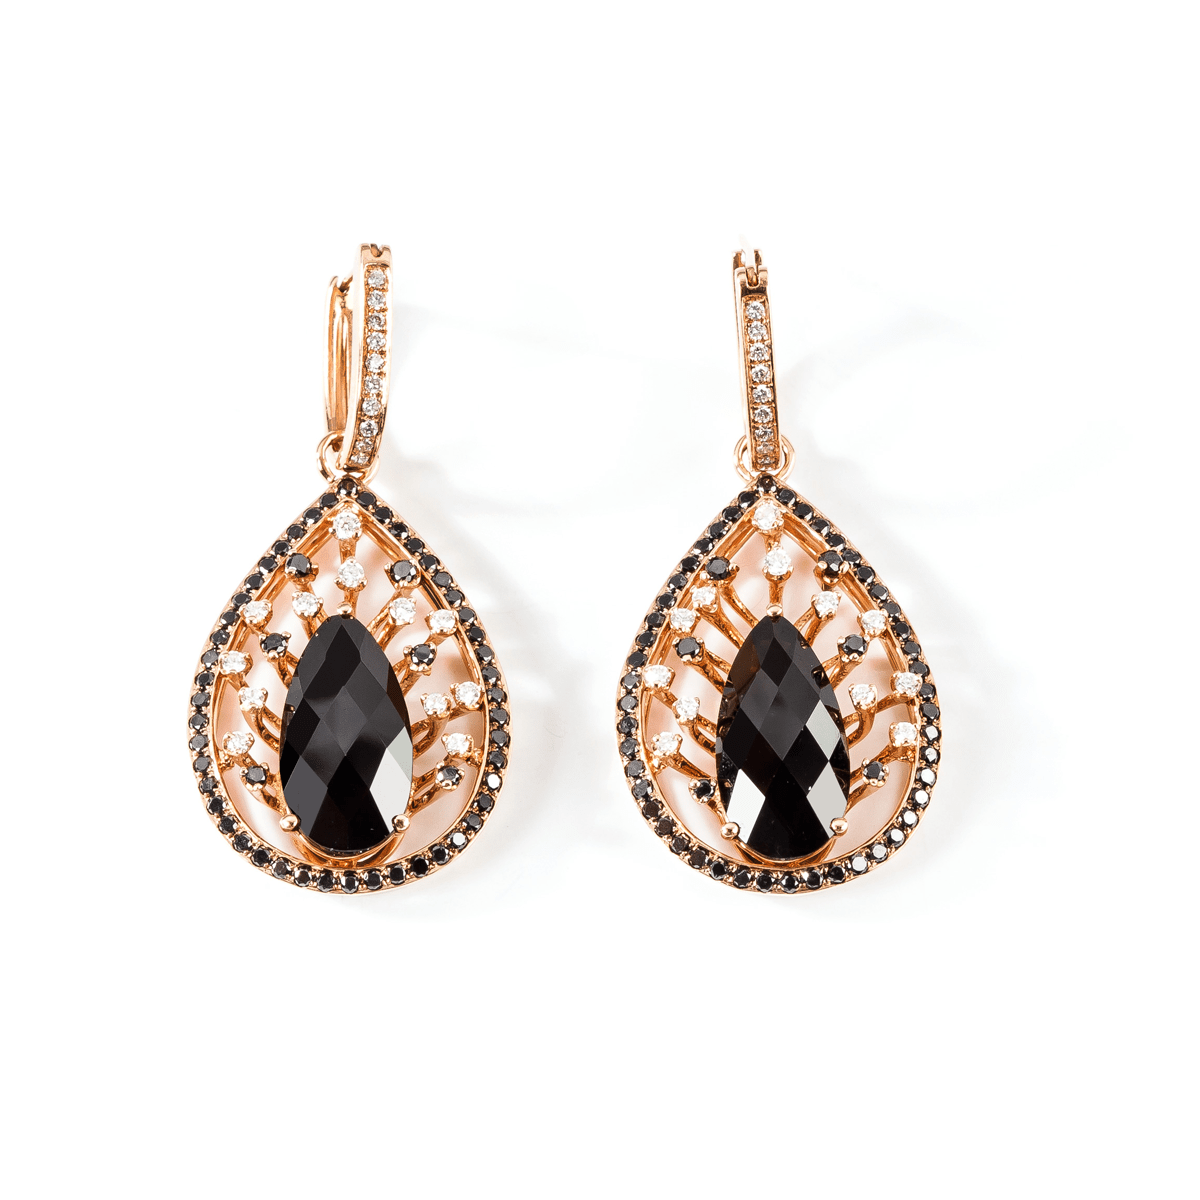 BLACK DIAMOND EARRING - PEAR MYSTERY - Chris Aire Fine Jewelry & Timepieces